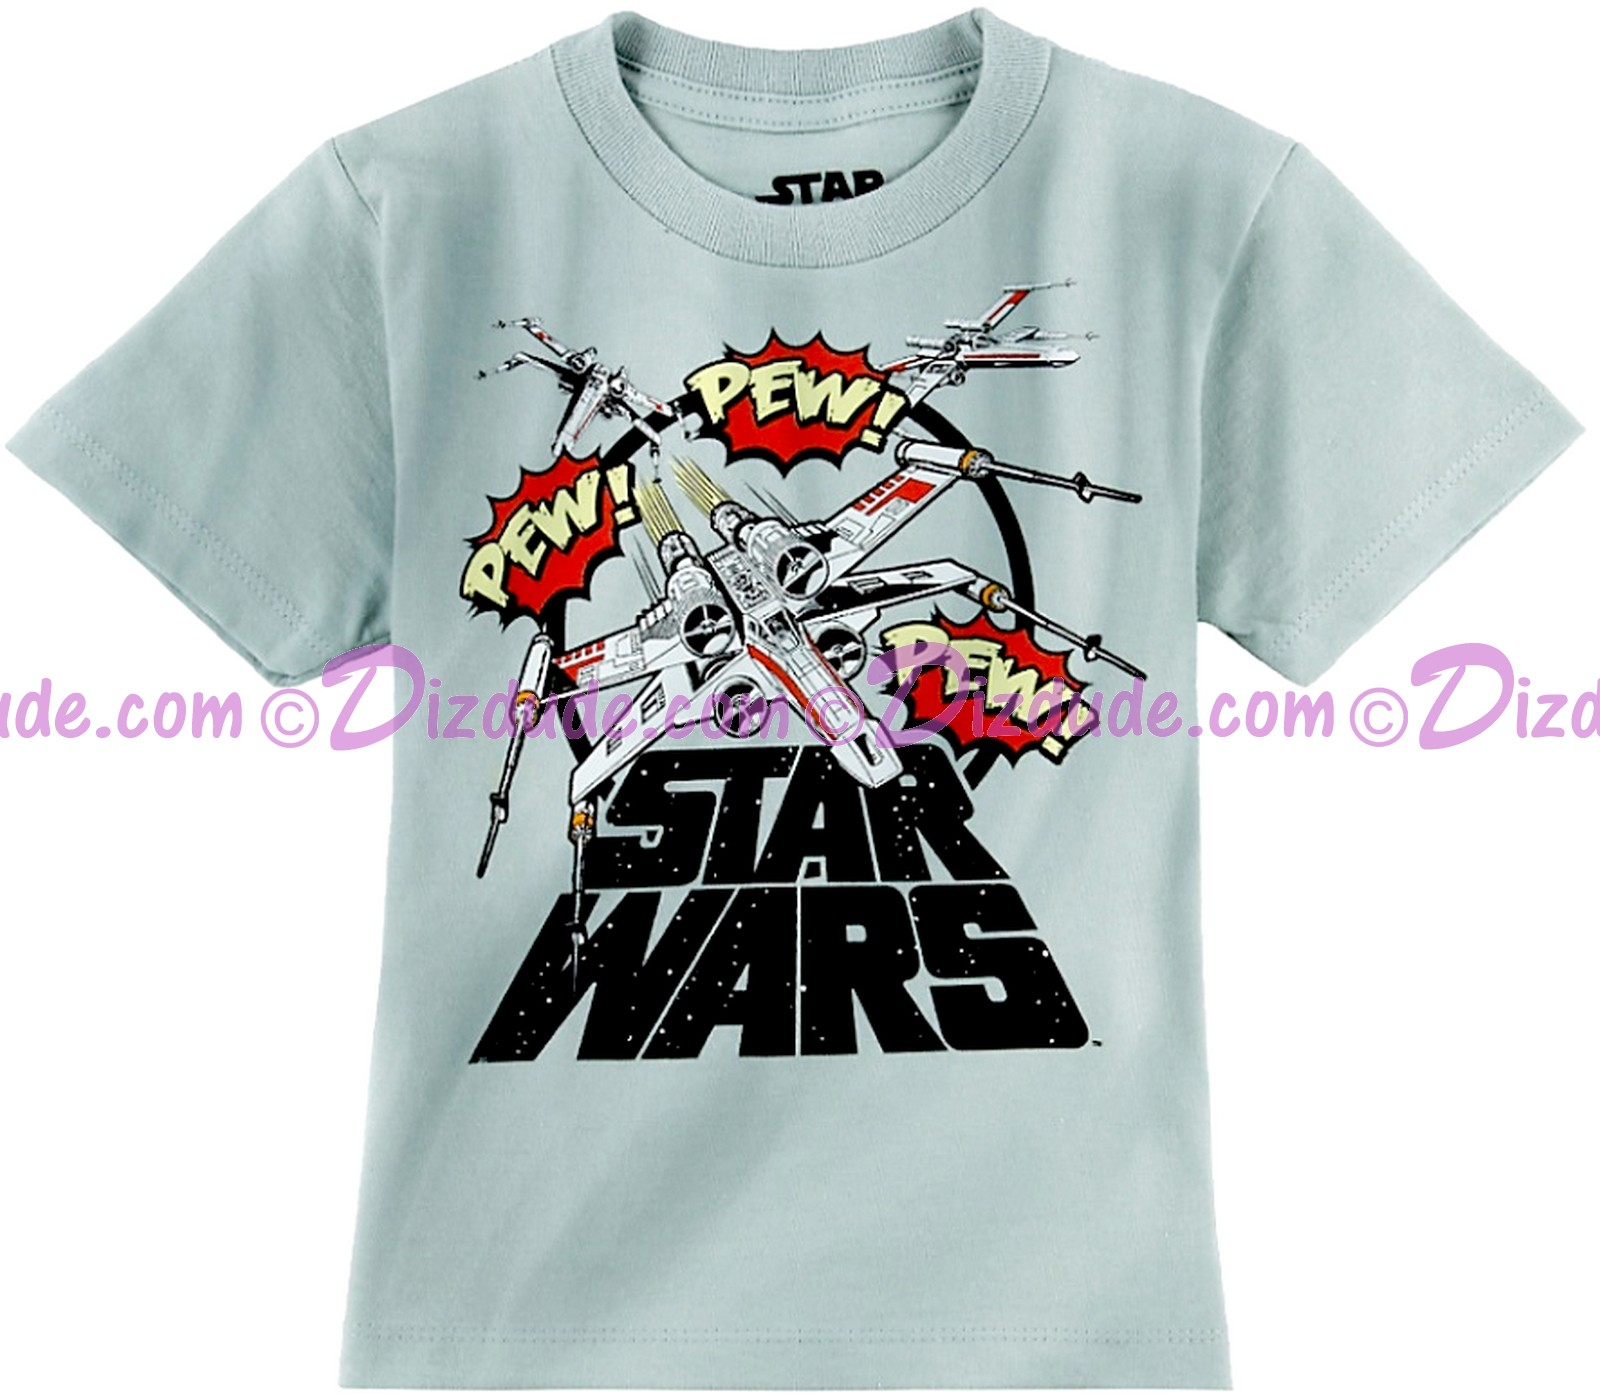 Disney Star Wars X-Wing Pew Pew Toddler T-Shirt (Tshirt, T shirt or Tee) © Dizdude.com